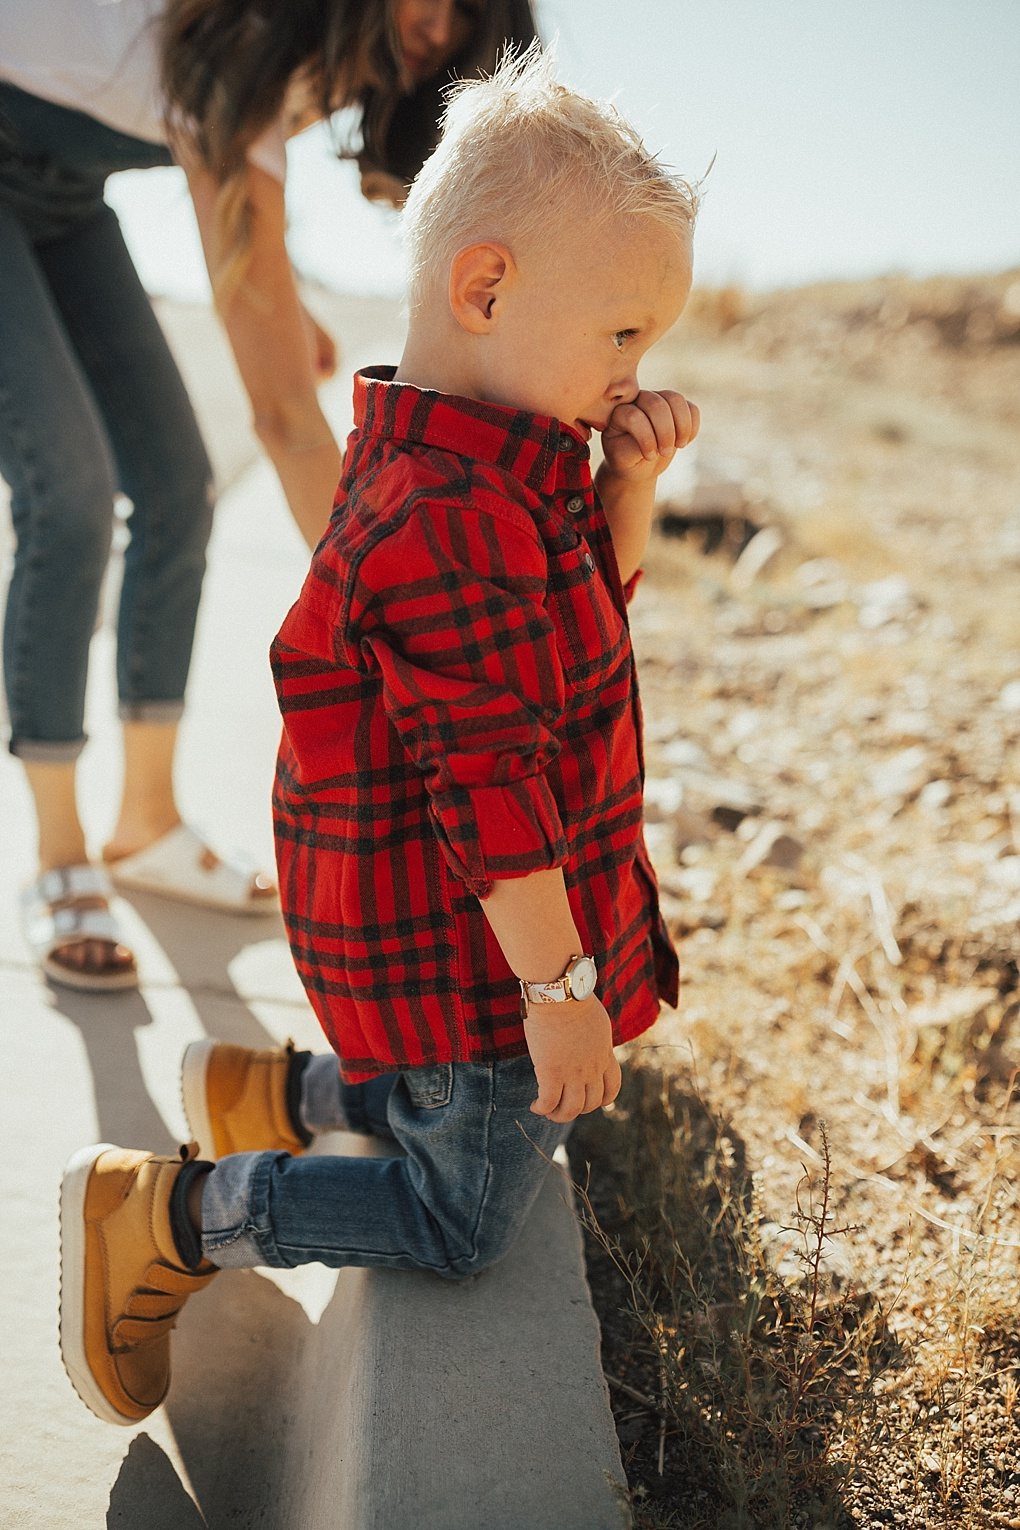 He's Going To Preschool! - King's Favorite Preschool Clothes by Utah fashion blogger Dani Marie Blog